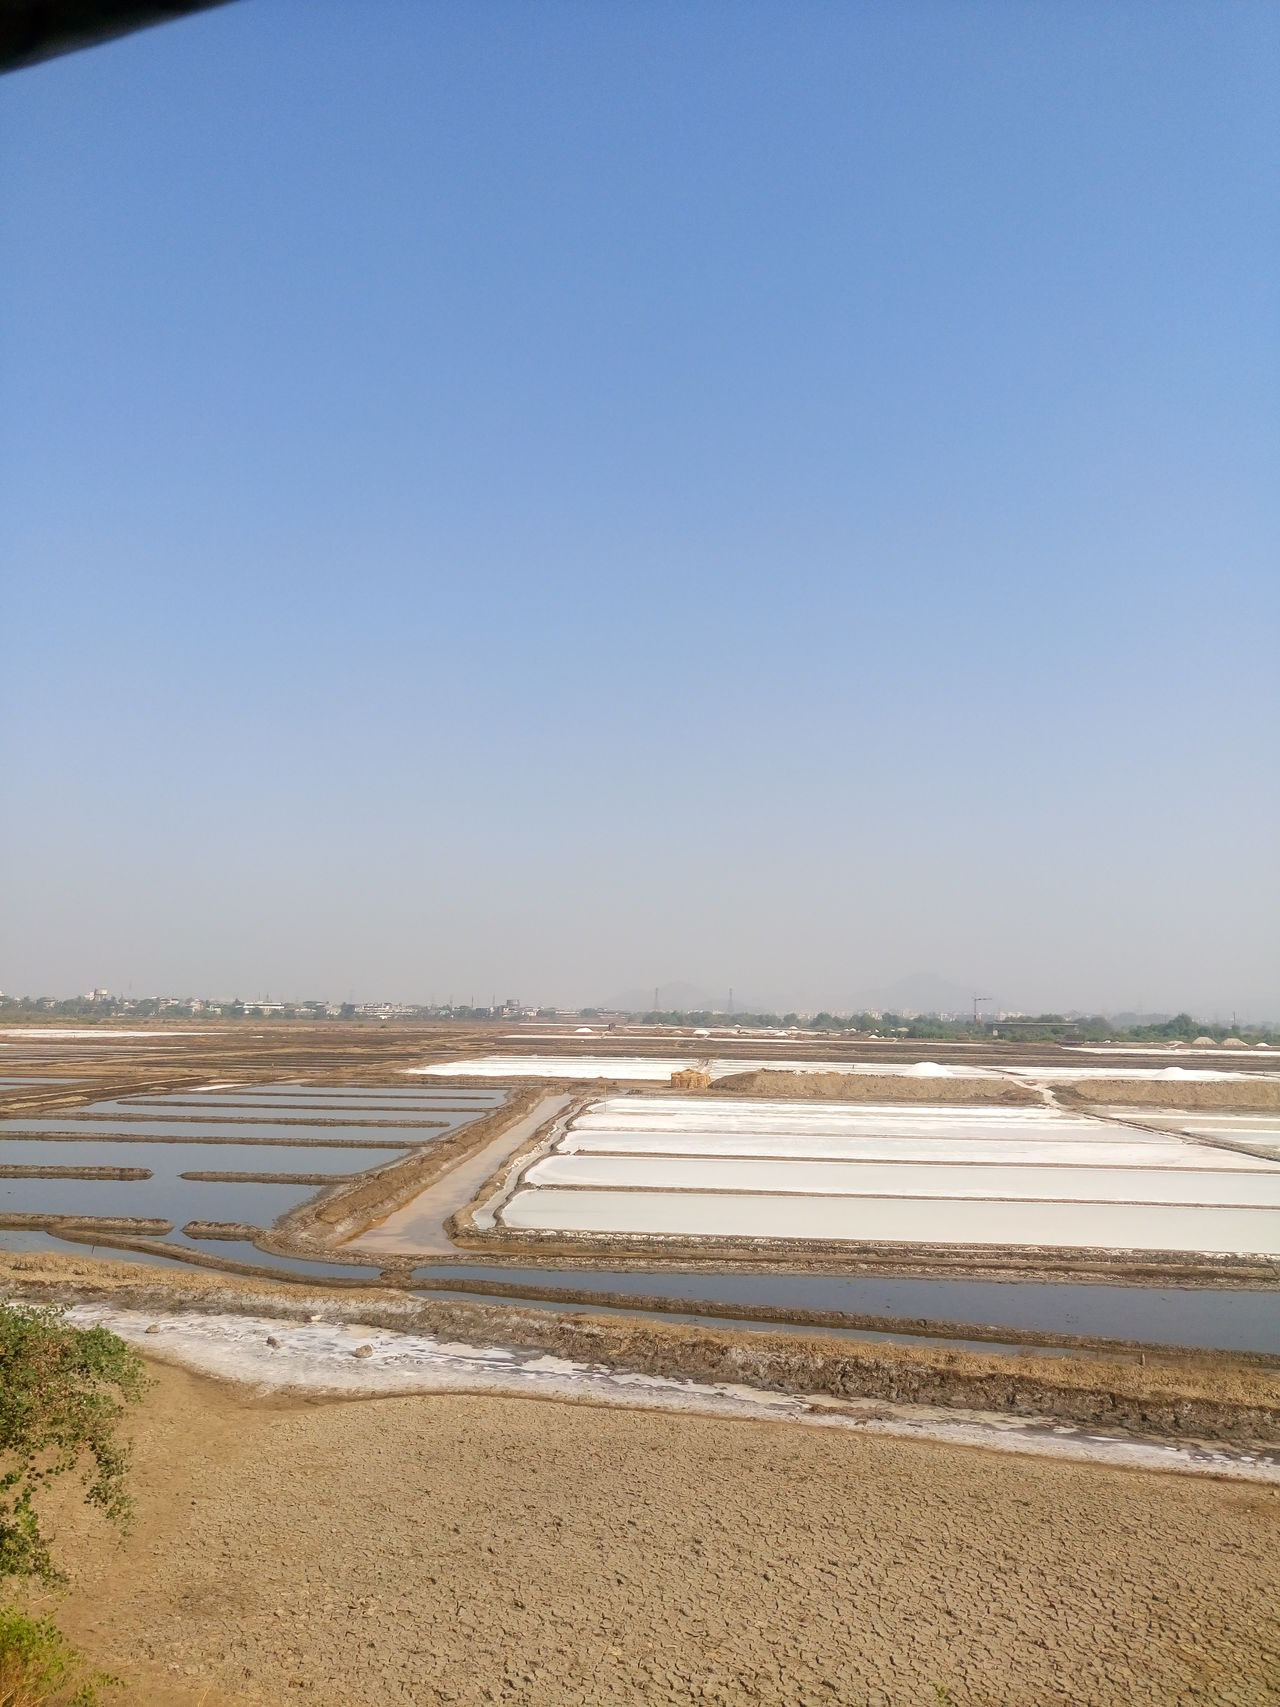 Agriculture Beauty In Nature Clear Sky Day Landscape Nature No People Outdoors Salt - Mineral Salt Basin Salt Flat Sky Tranquility